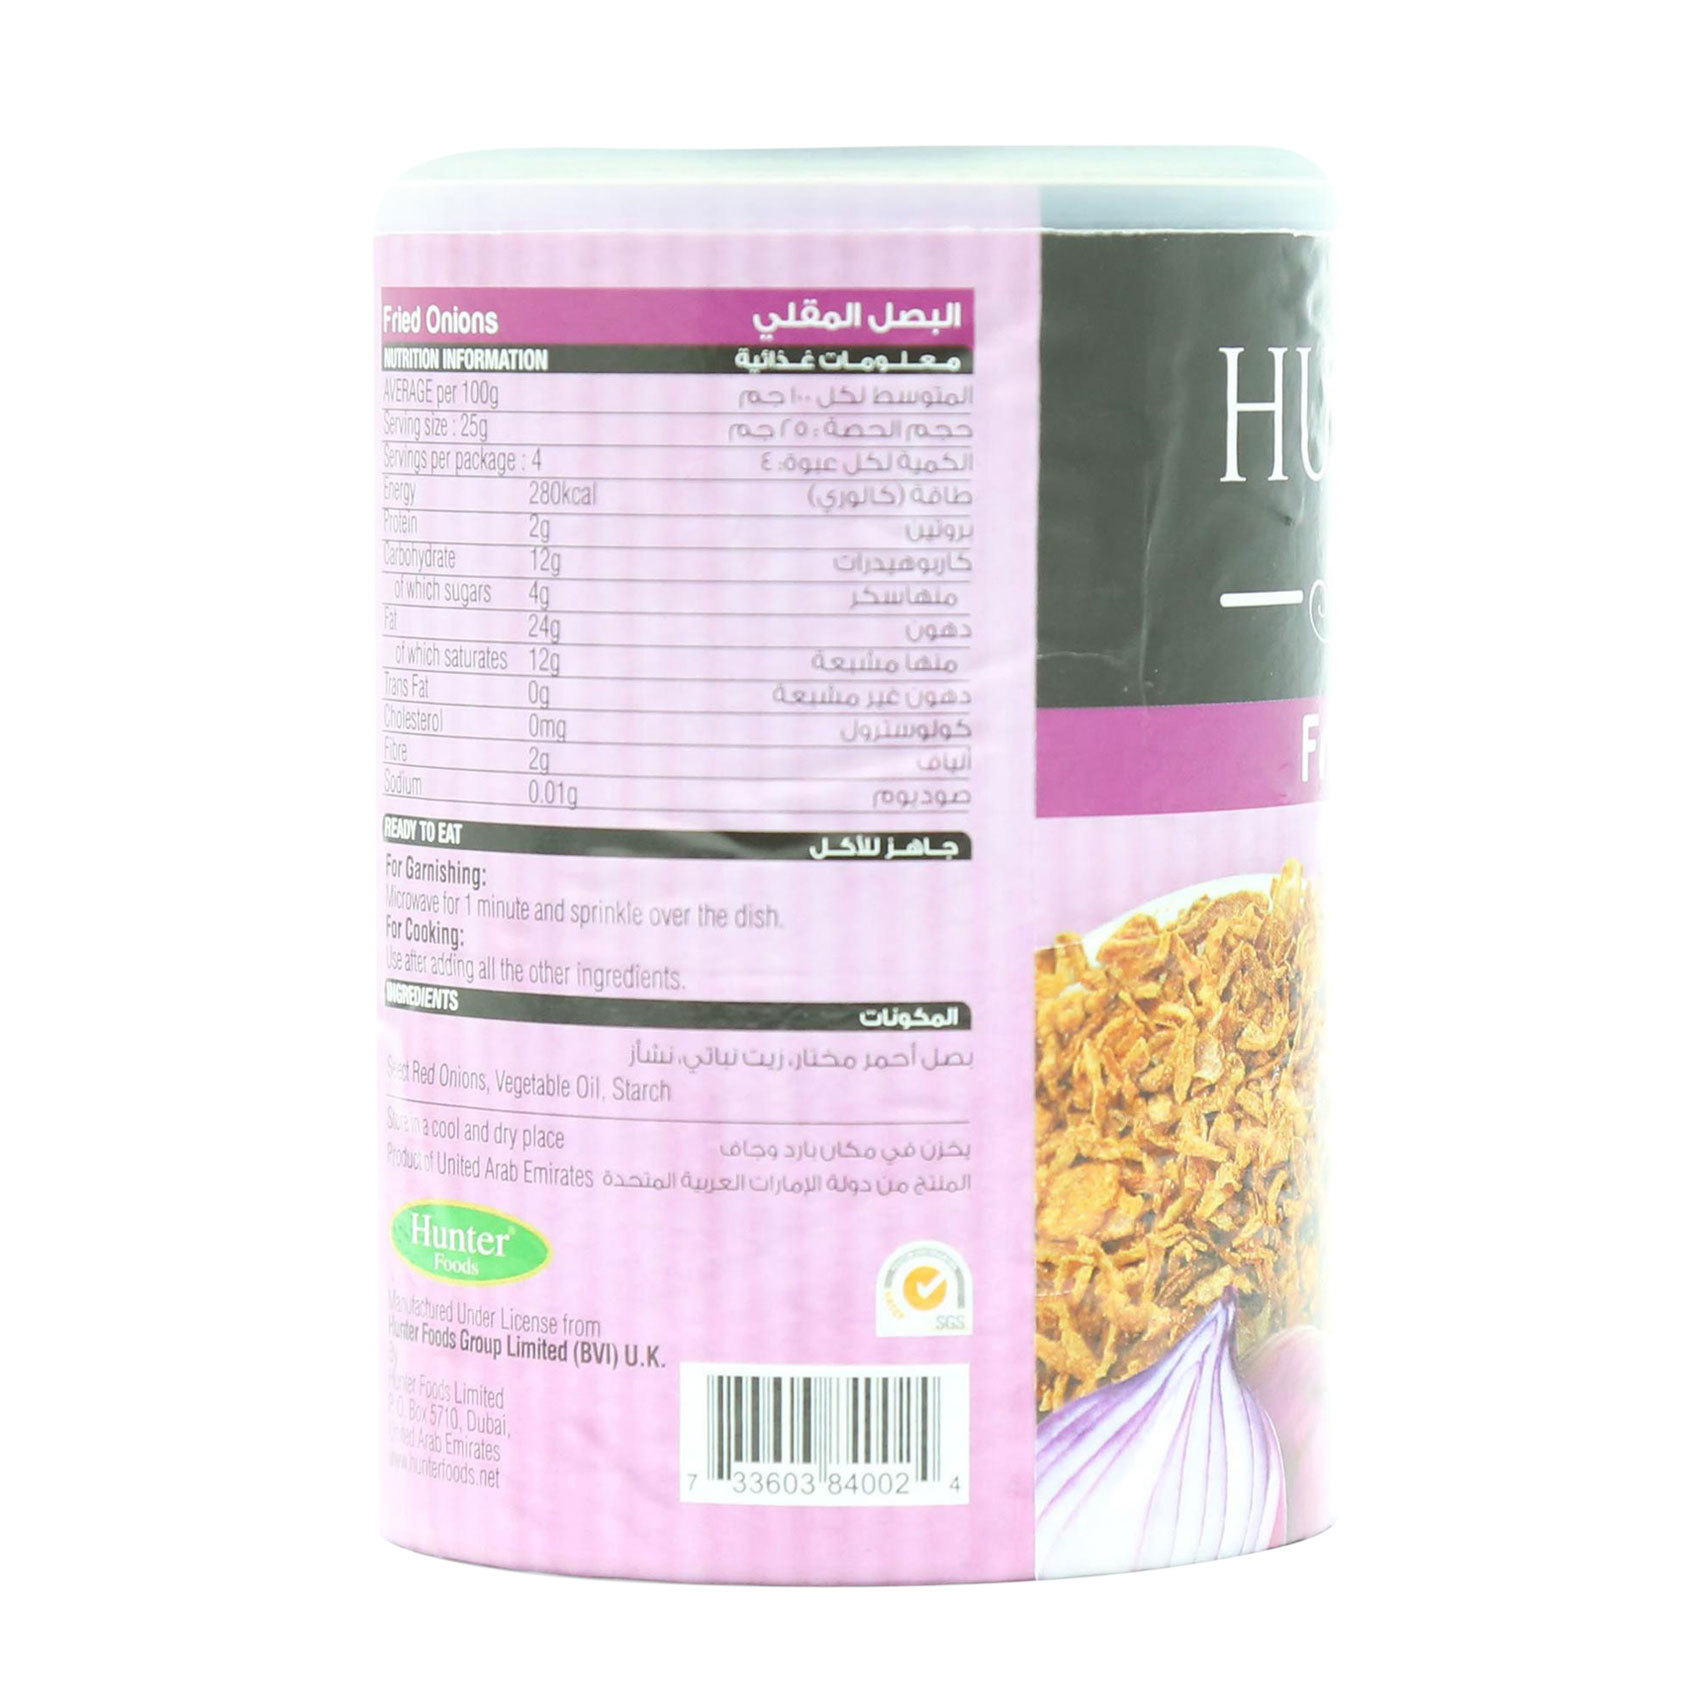 HUNTER FRIED ONIONS 100G